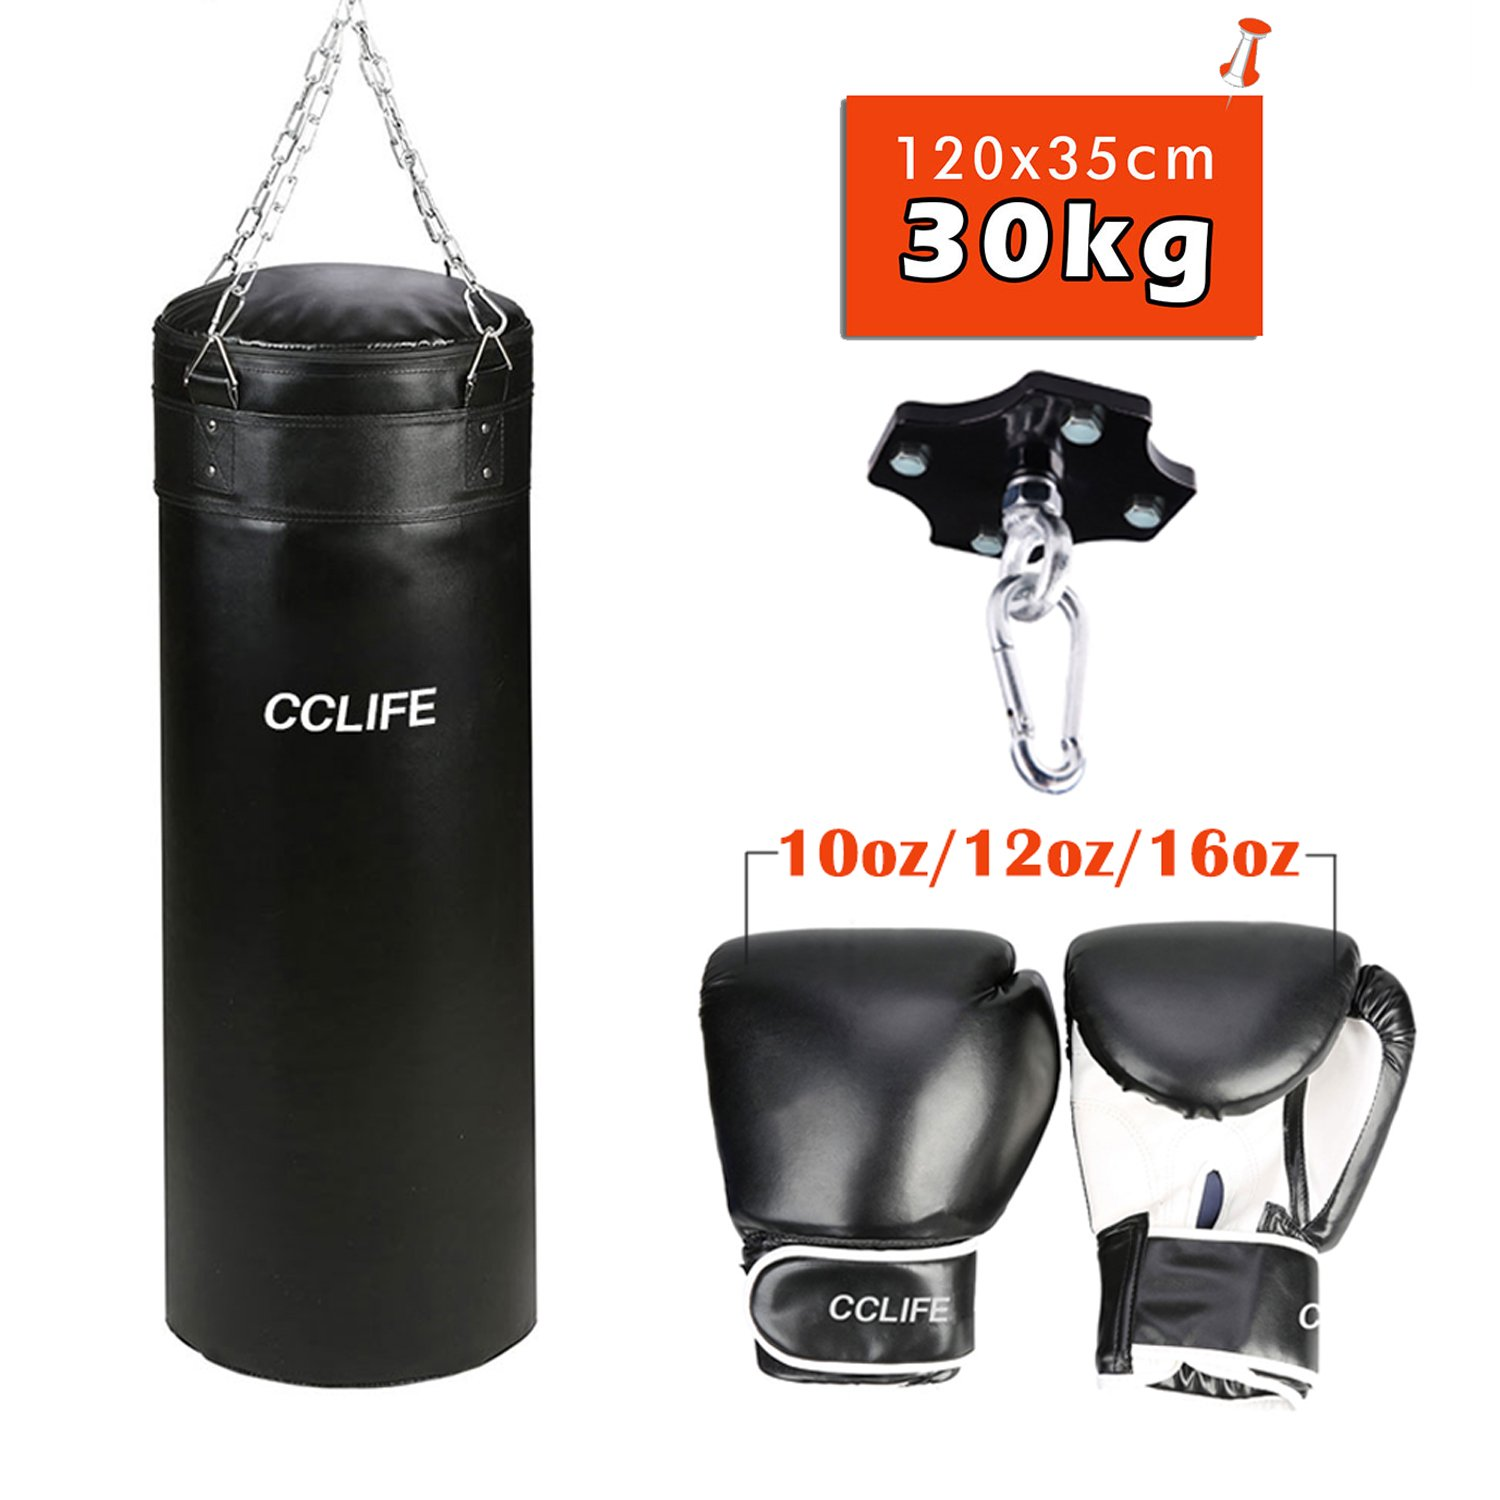 ca 200 kg CCLIFE Punching bag ceiling holder ceiling hook punch bag max load